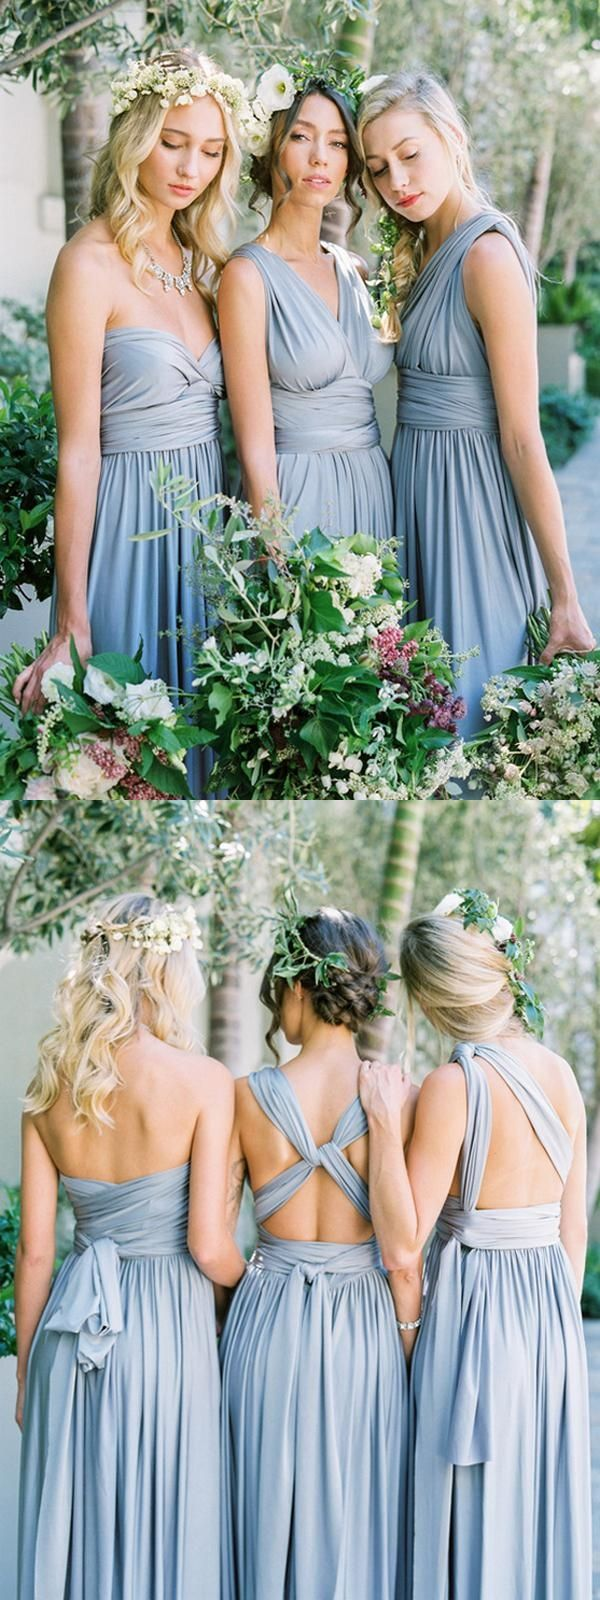 The 25 best multiway bridesmaid dress ideas on pinterest jersey bridesmaid dress dress for wedding convertible bridesmaid dress floor length bridesmaid ombrellifo Images